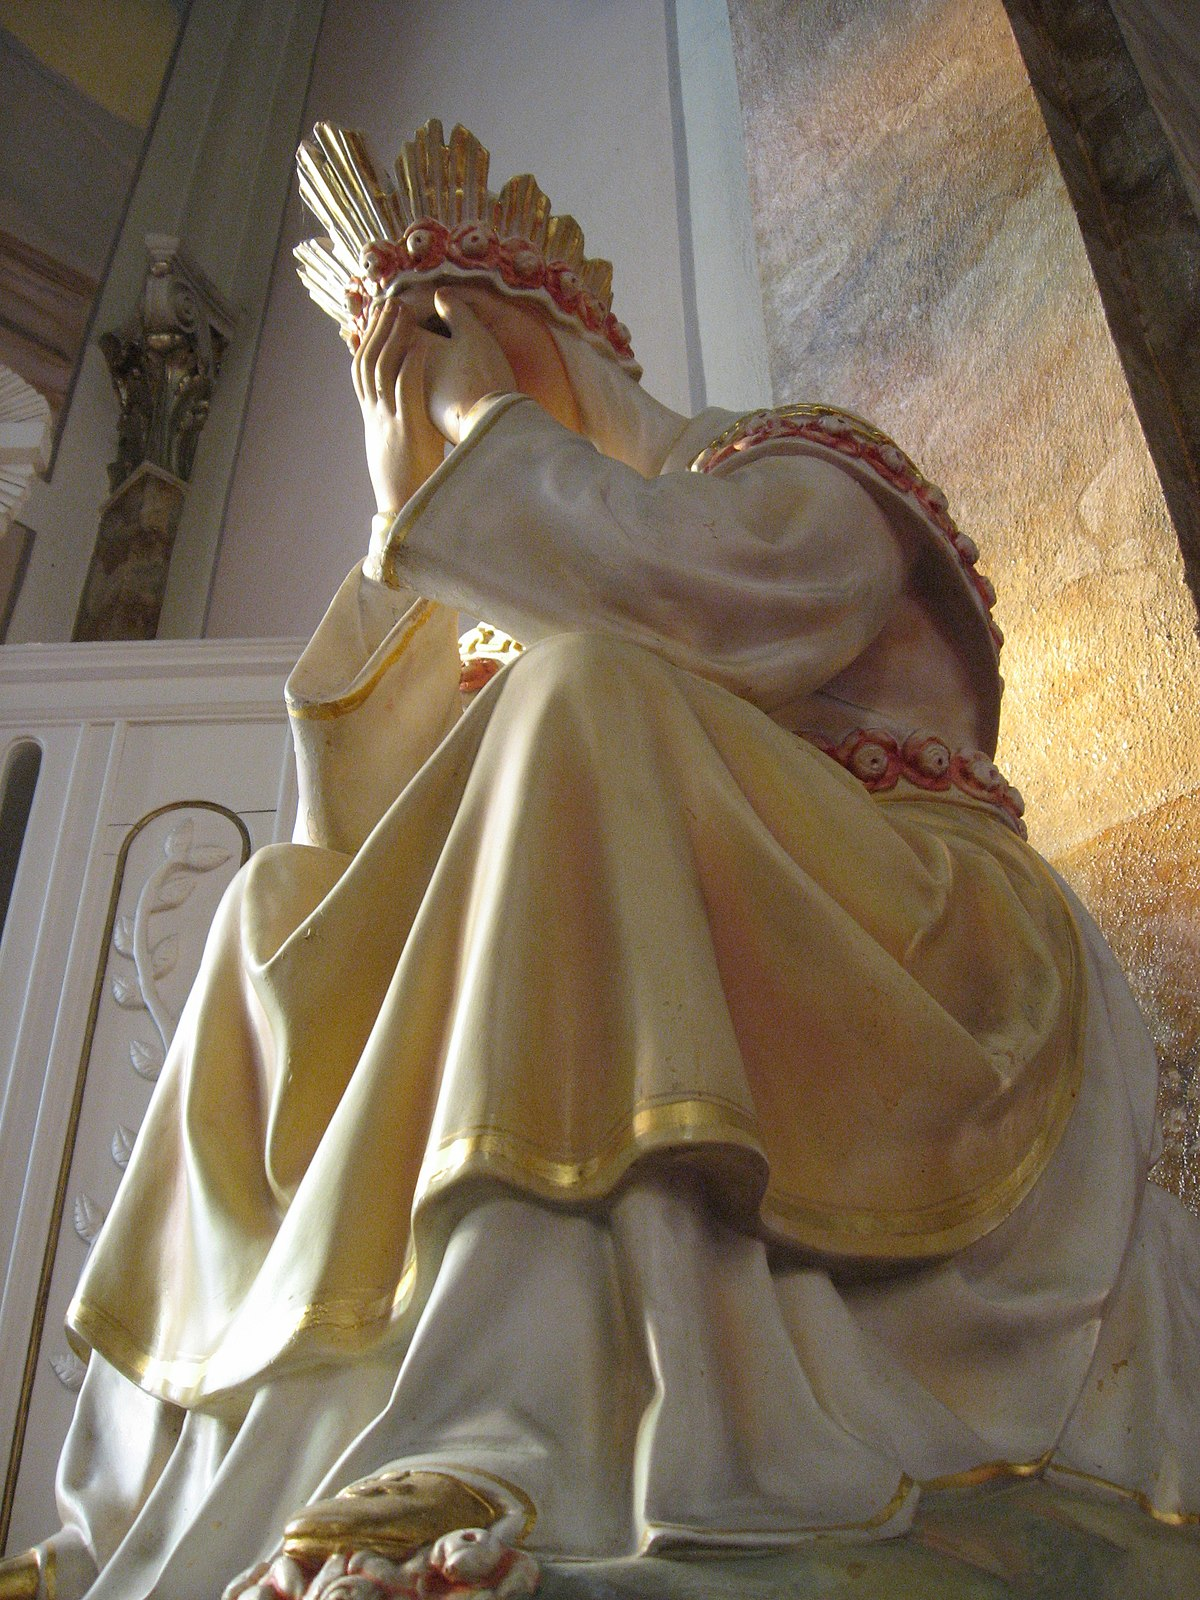 https://upload.wikimedia.org/wikipedia/commons/thumb/7/70/Our_Lady_of_La_Salette_(crying).jpg/1200px-Our_Lady_of_La_Salette_(crying).jpg